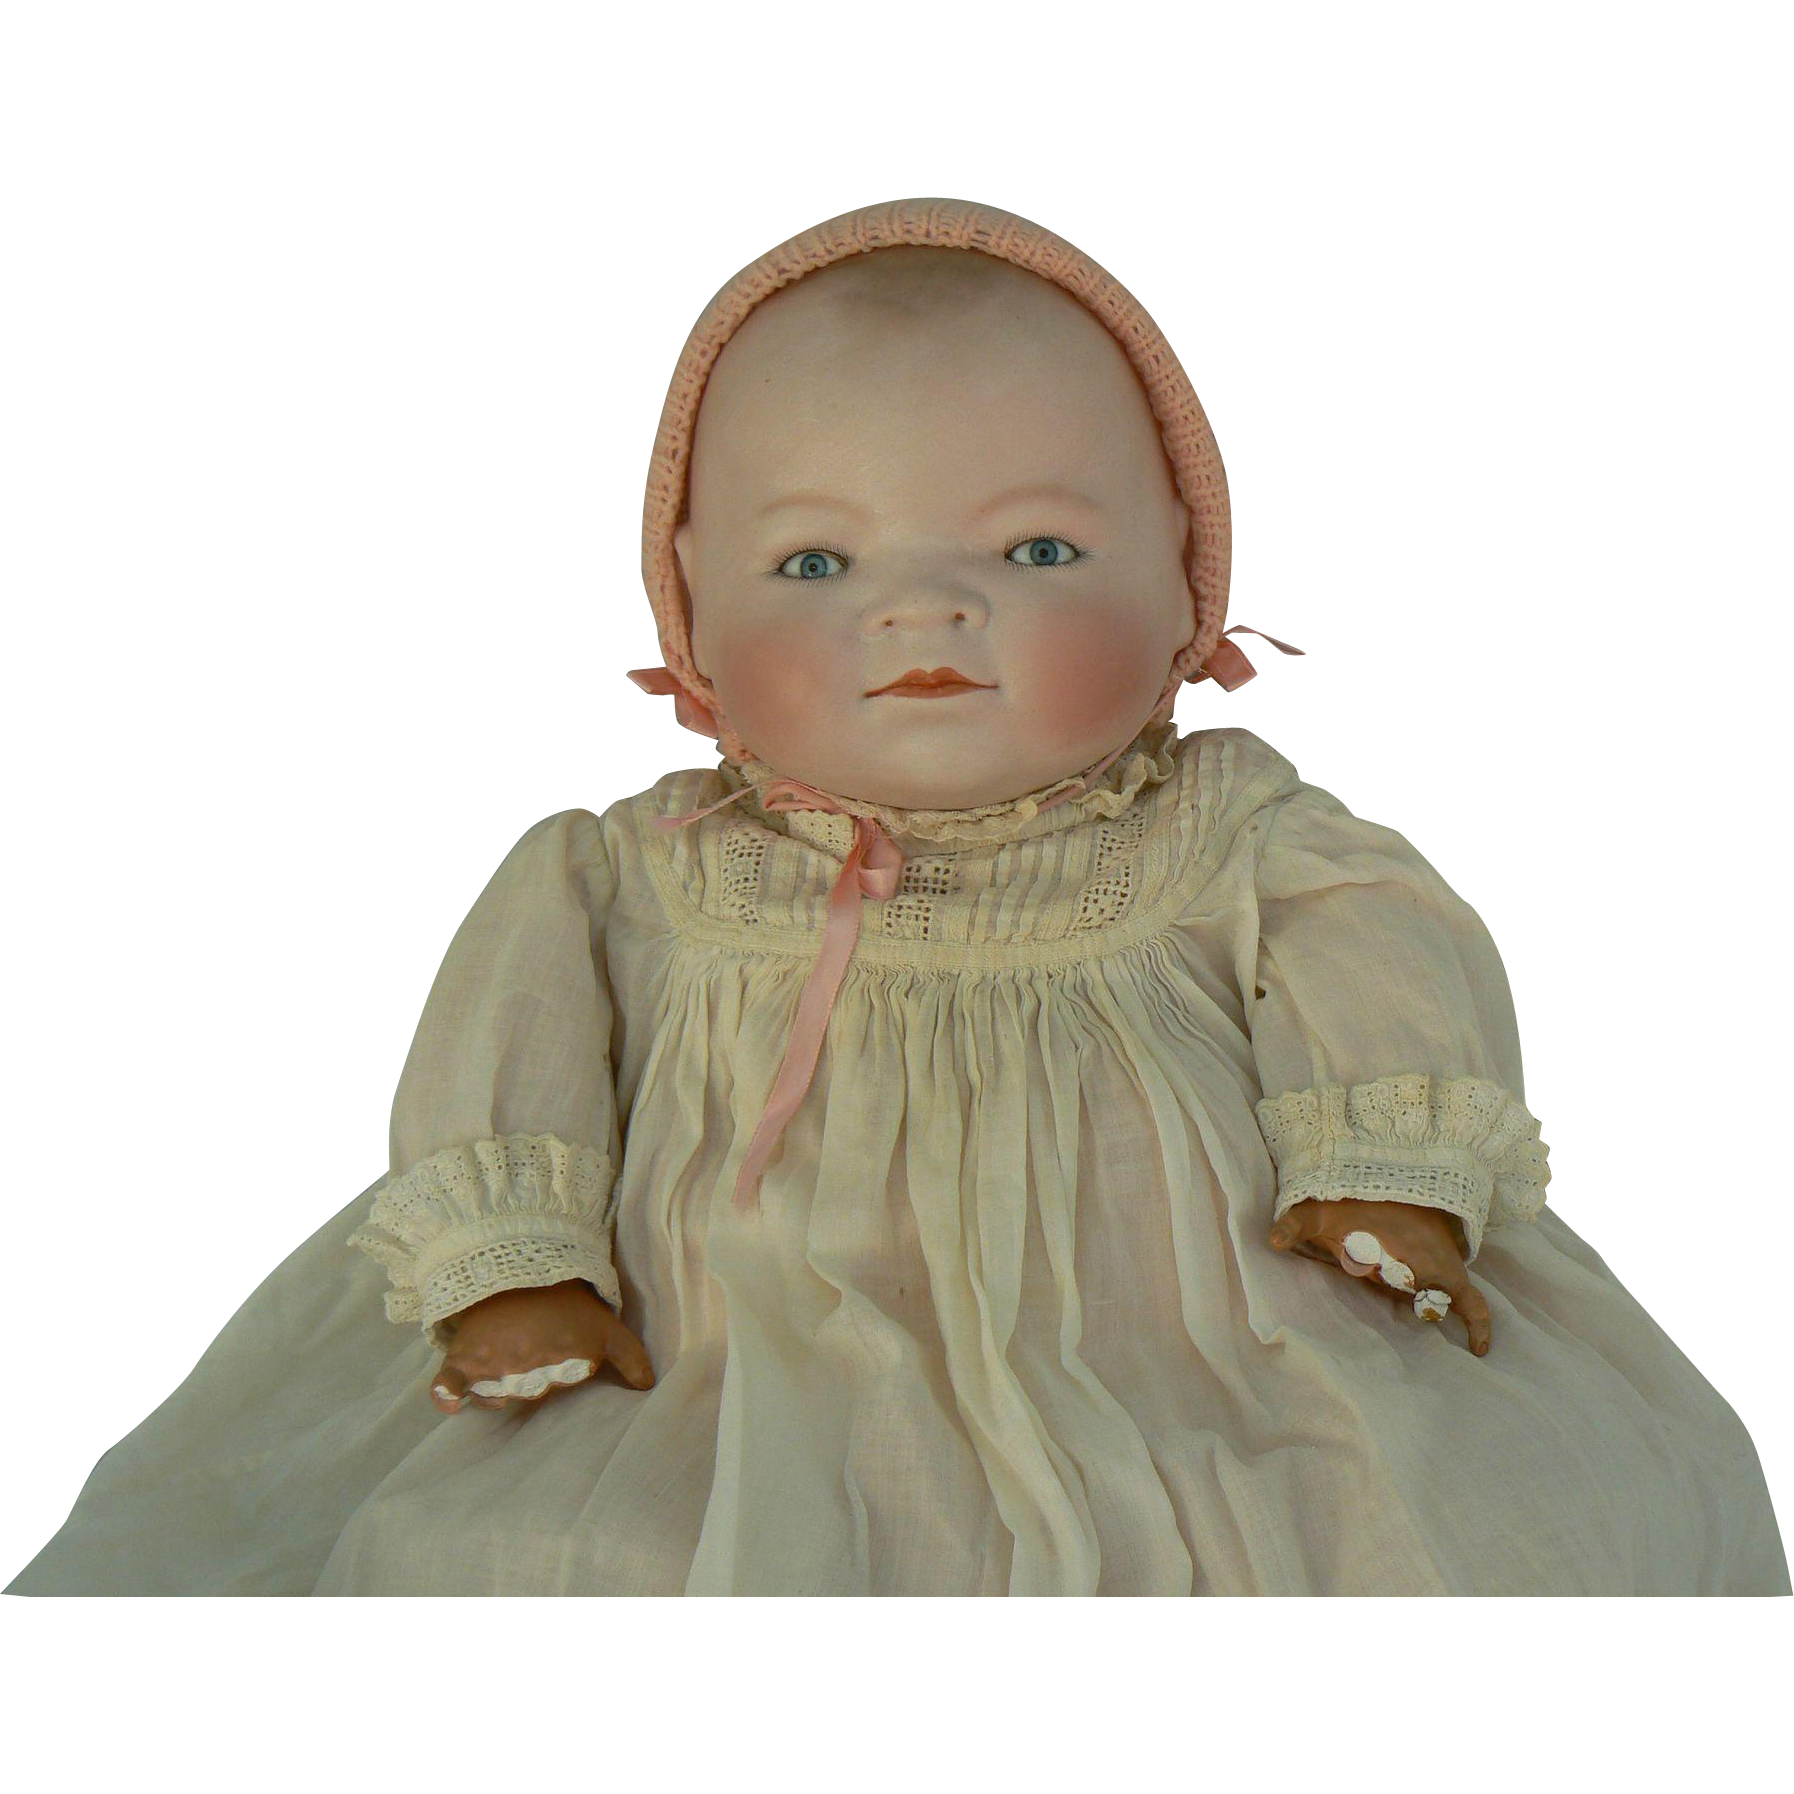 Life size Bye-Lo baby doll 17 inch head circumference and 20 inches long, dressed and cute.